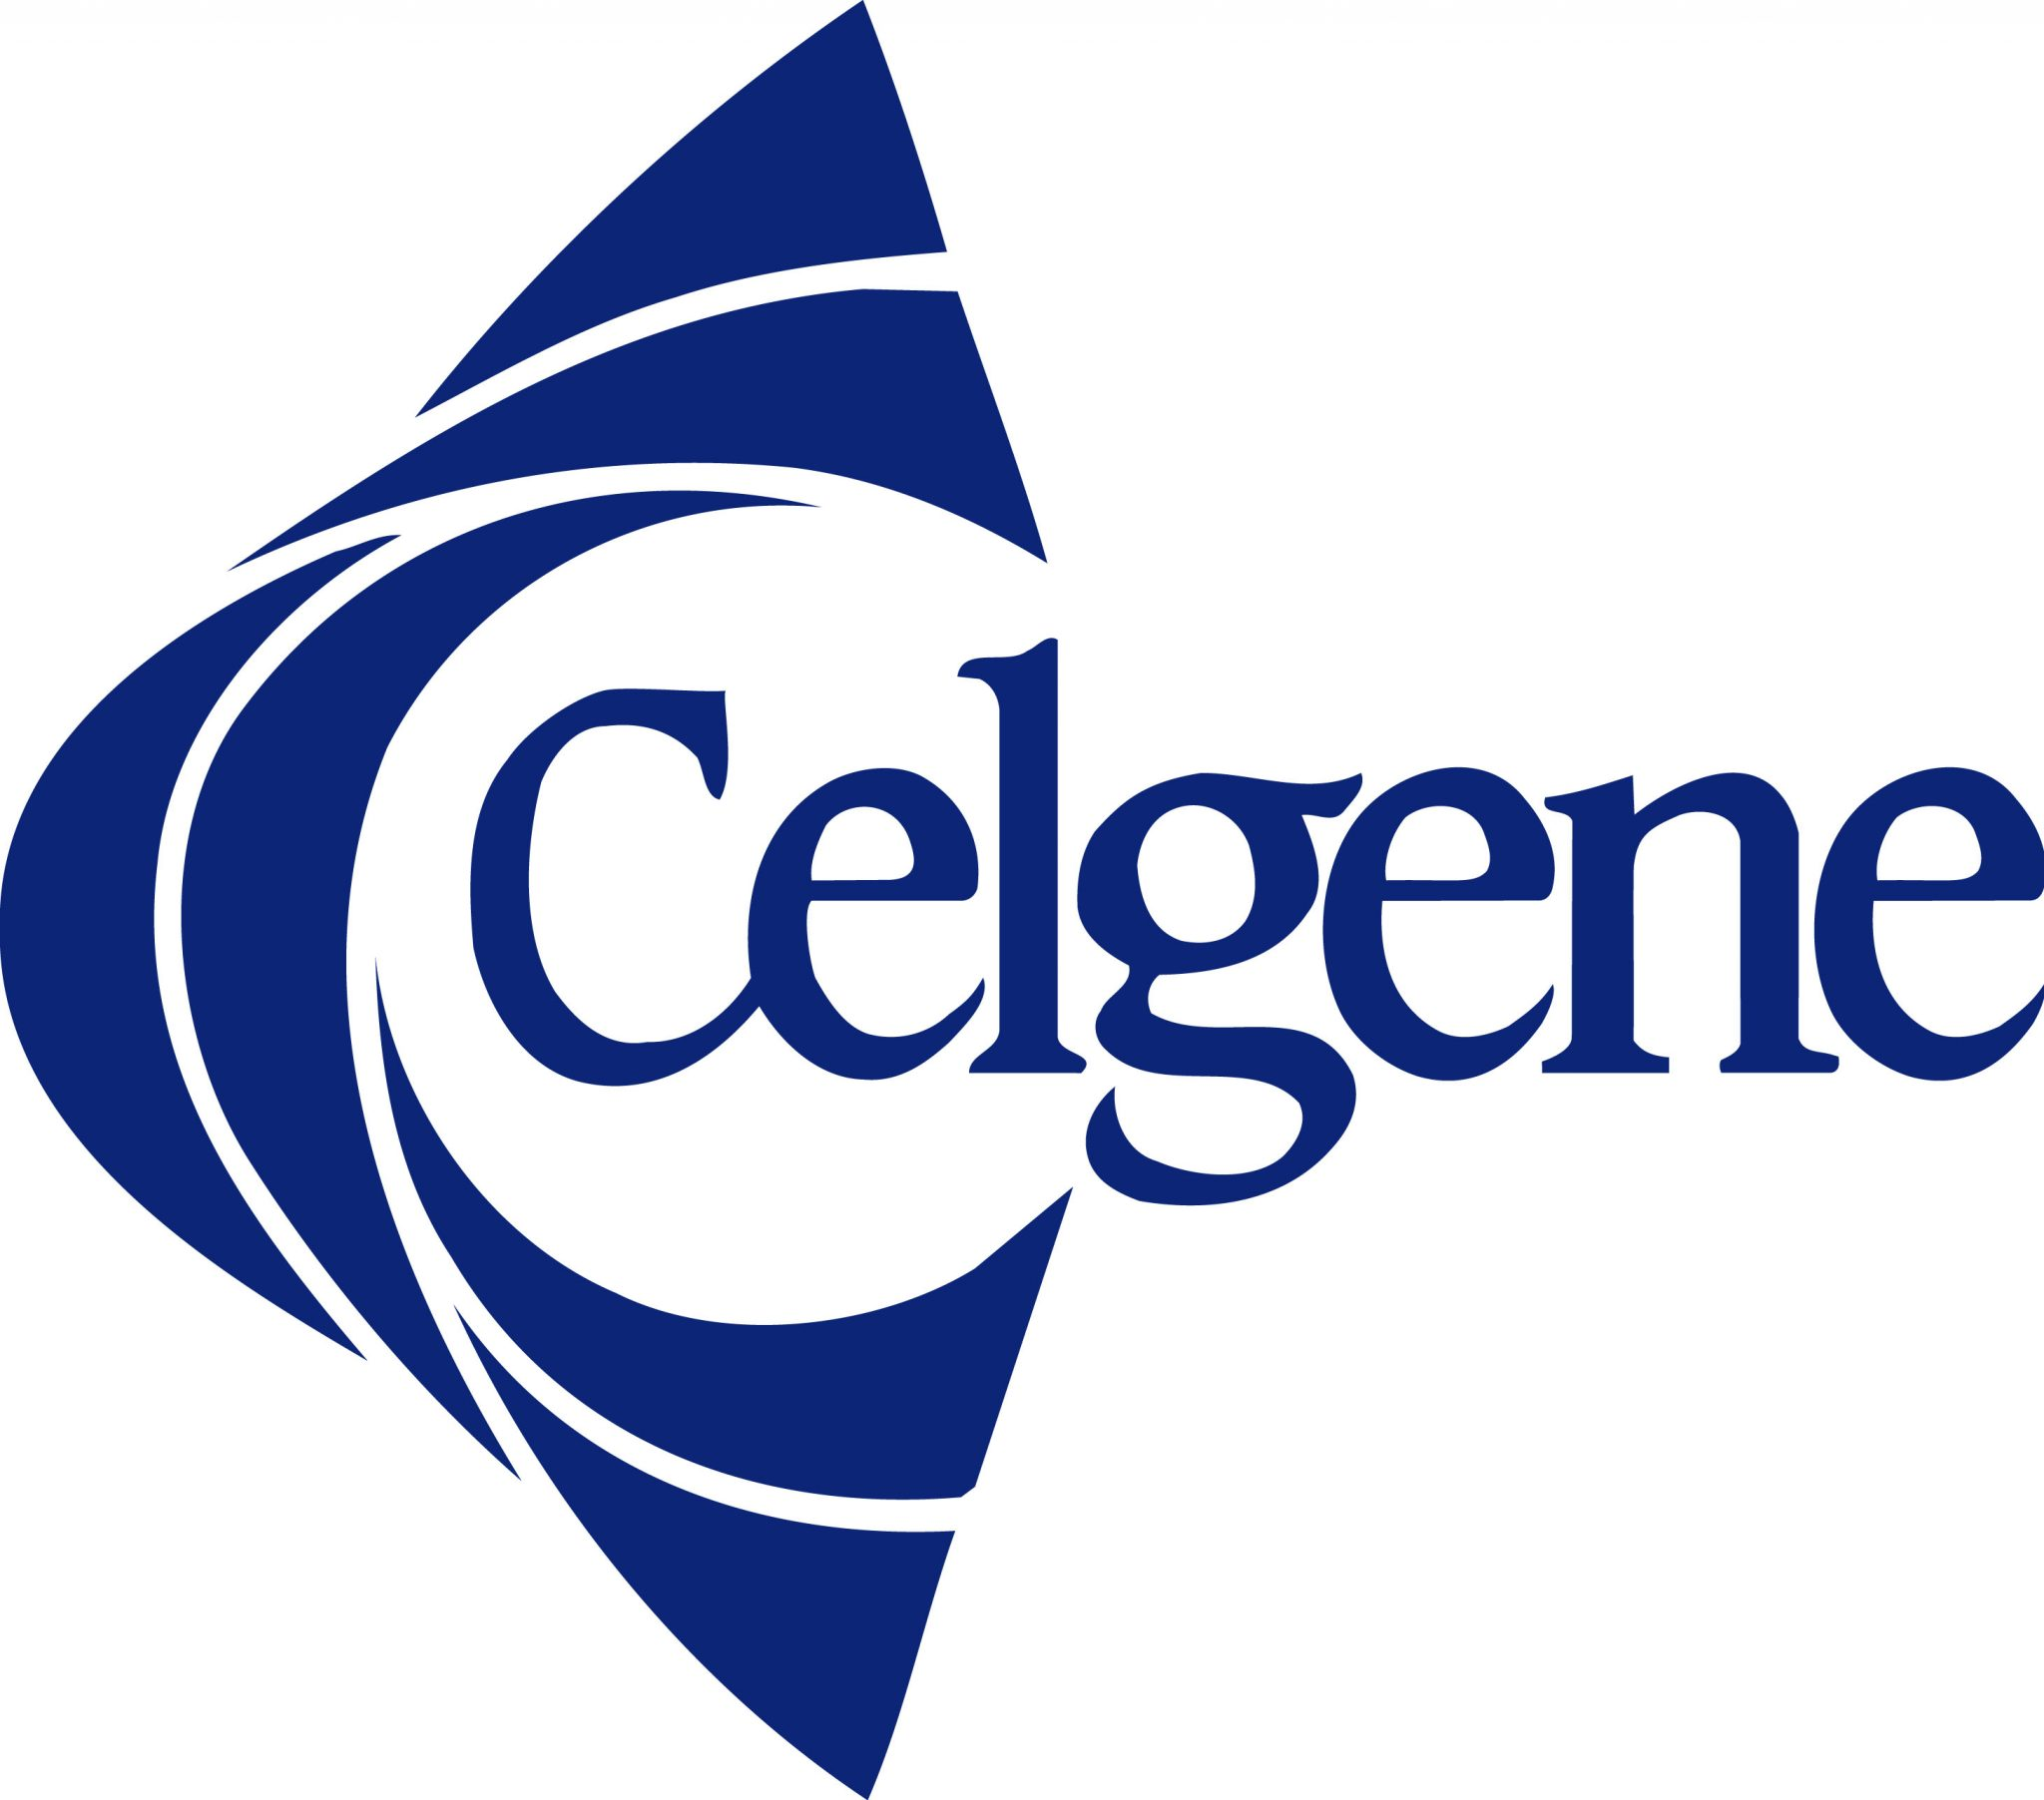 (CELG) Position Reduced by Cribstone Capital Management LLC